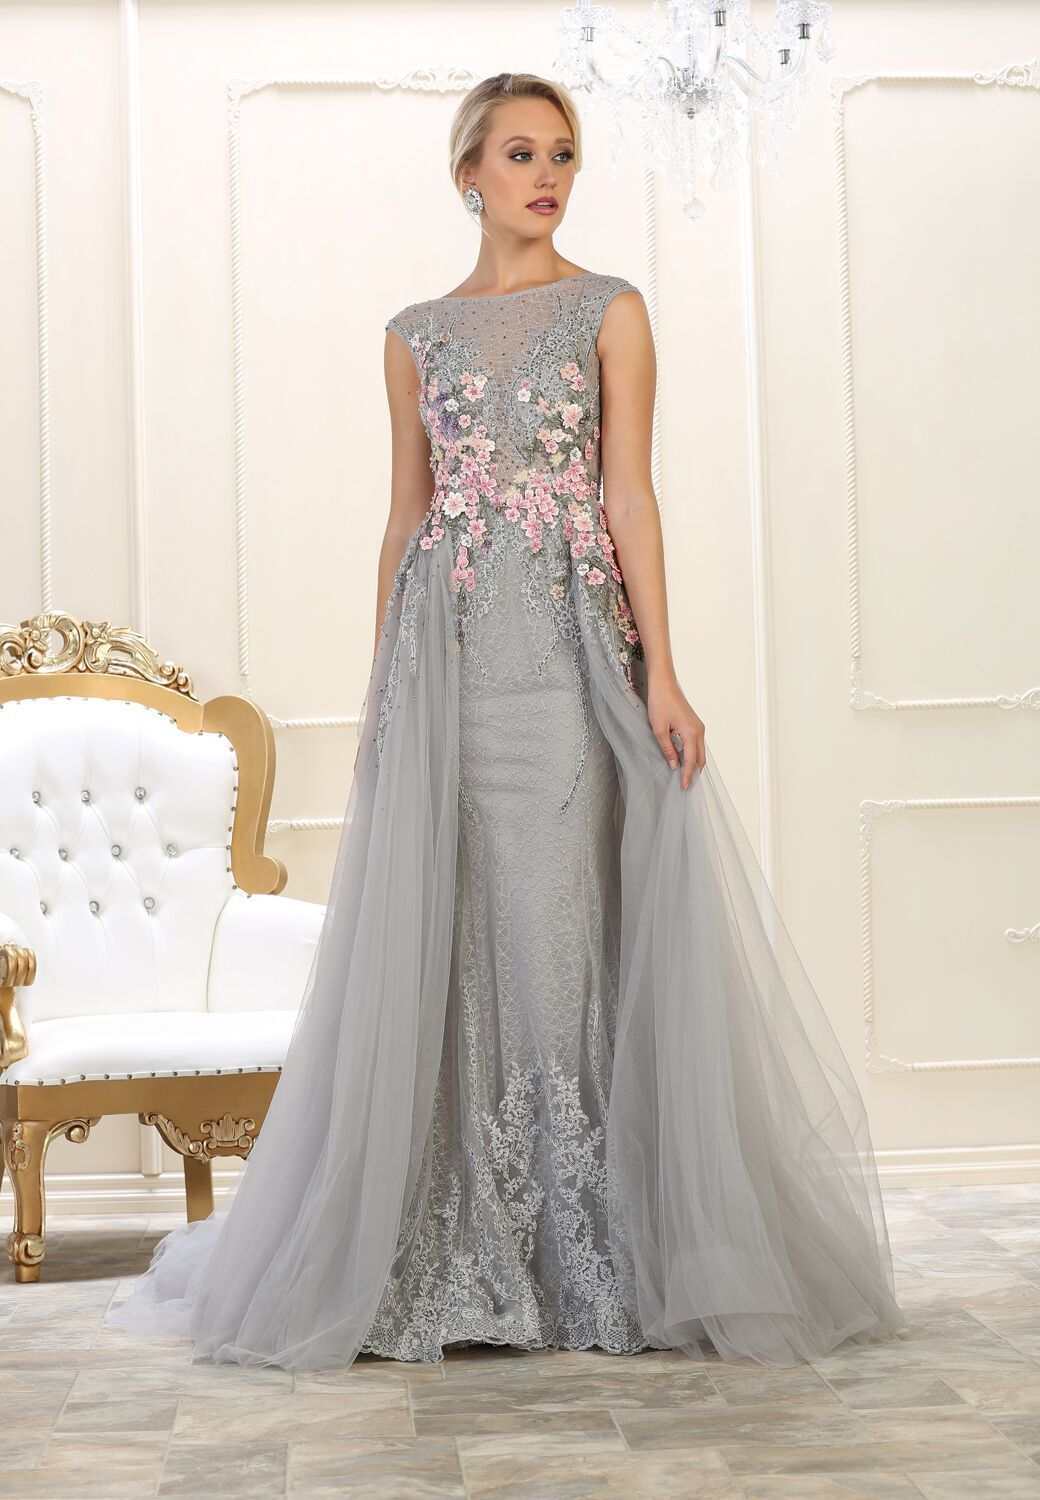 ... floor length dress features cap sleeve with embellish flowers and tulle  material. Perfect for prom 21fef1a945b1